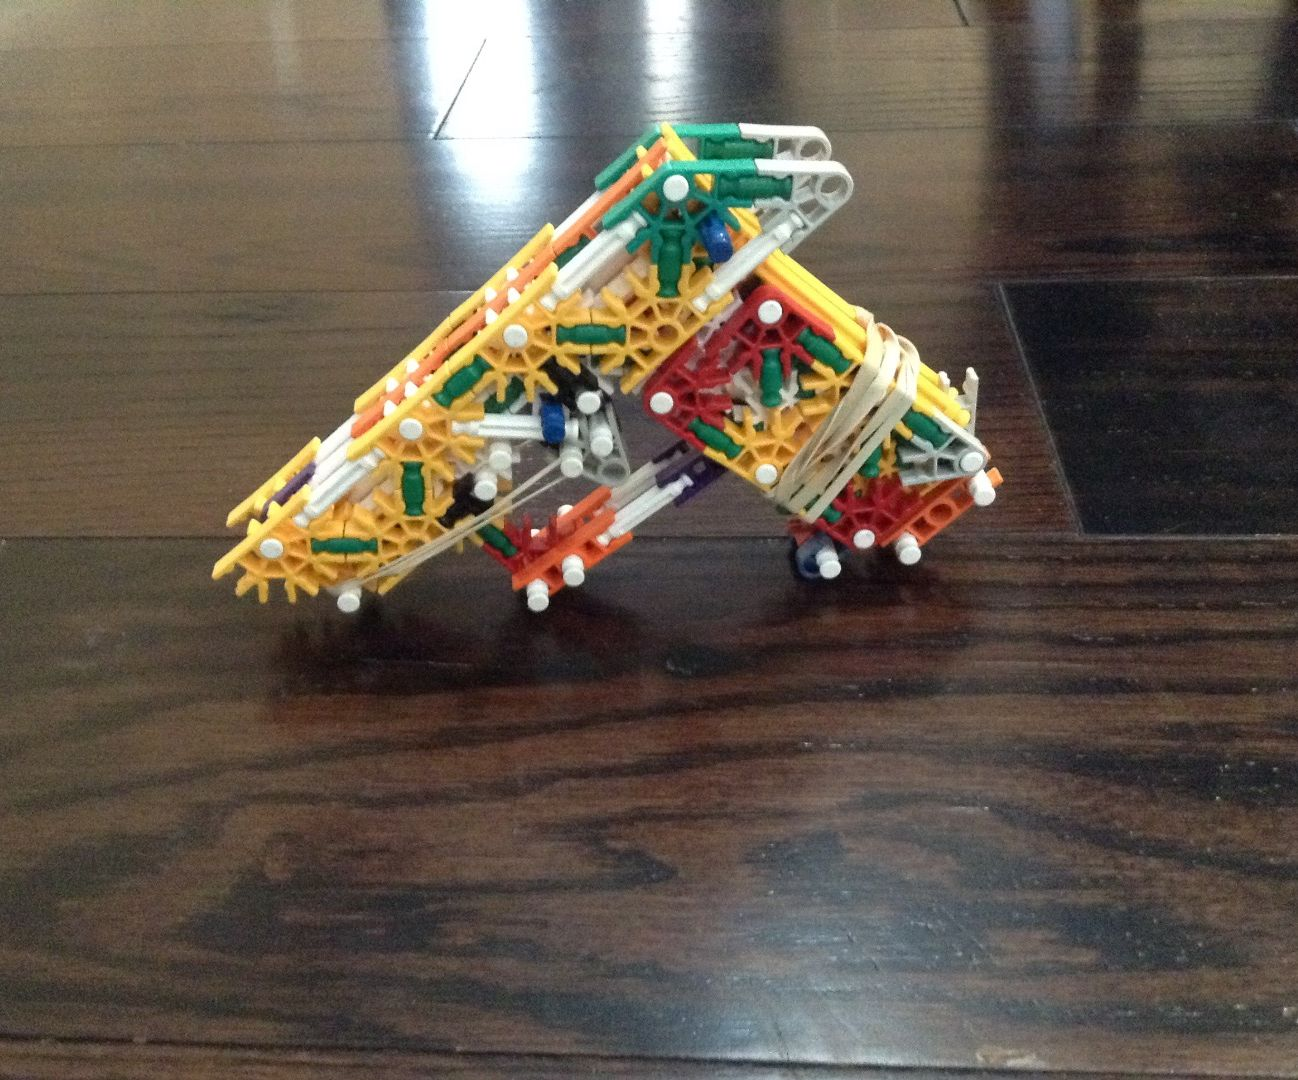 K'nex Walther PPK -- Working Model -Review-